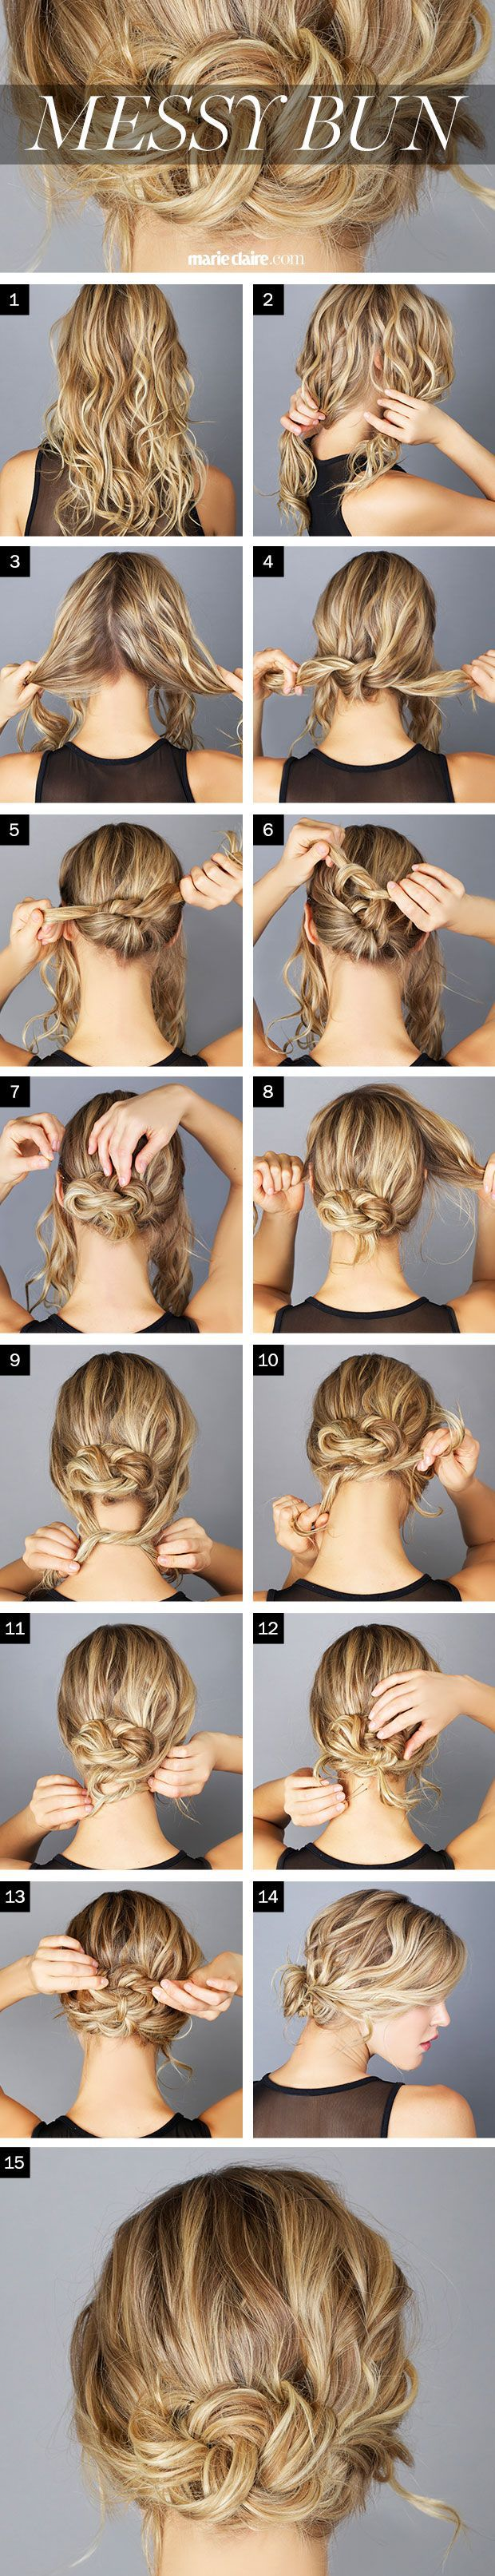 The steps to the perfect messy bun! Get inspired with haircare from Duane Reade.: Messy Bun Tutorial, Hairstyles, Easy Messy Bun, Hairdos, Hair Do, Updos, Messy Buns, Hair Style